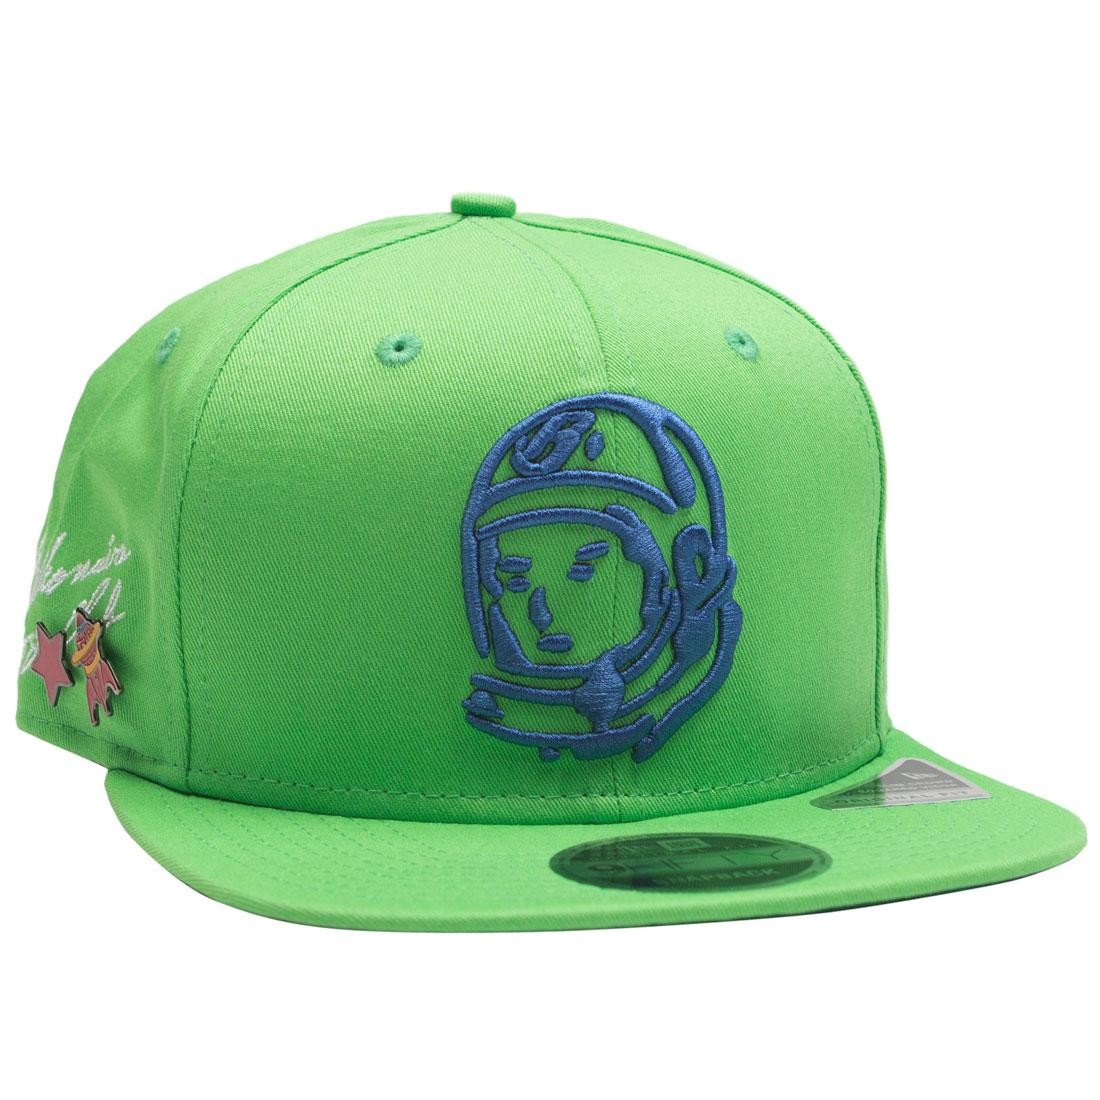 Billionaire Boys Club Snap Helmet Snapback Cap (green)